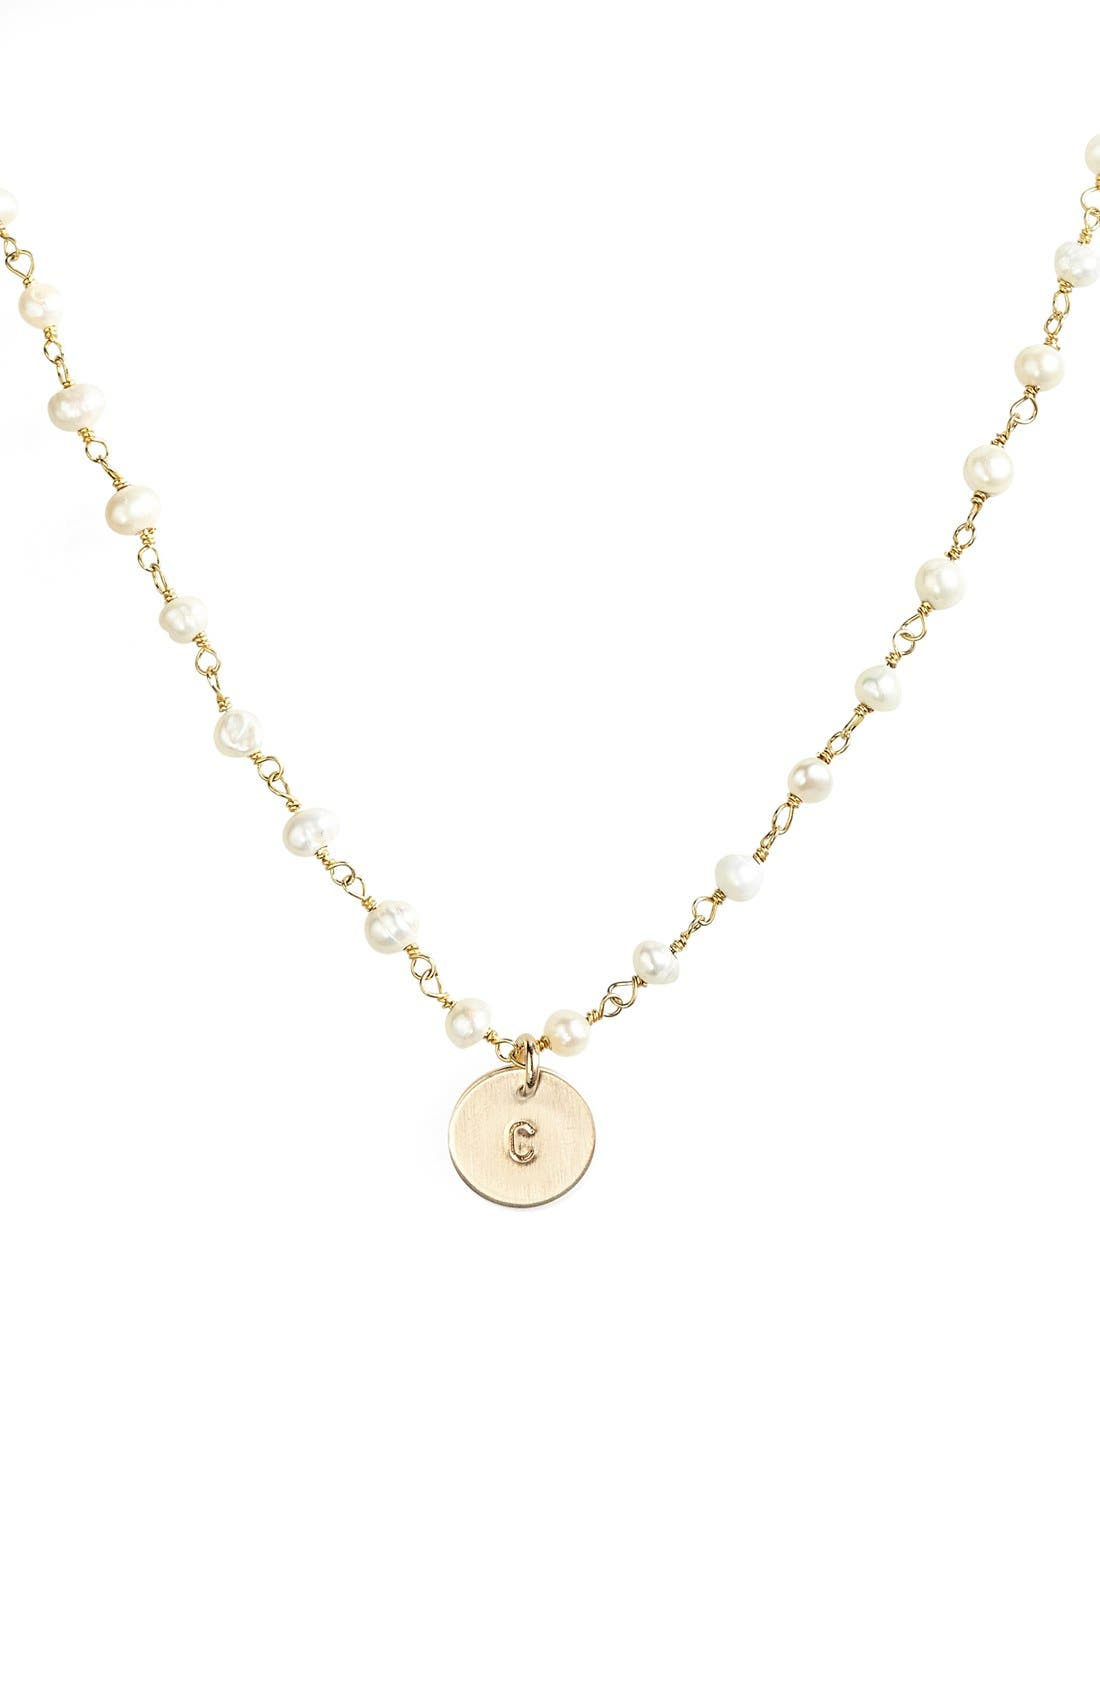 Alternate Image 1 Selected - Nashelle 14k-Gold Fill Mini Initial Disc Pearl Necklace